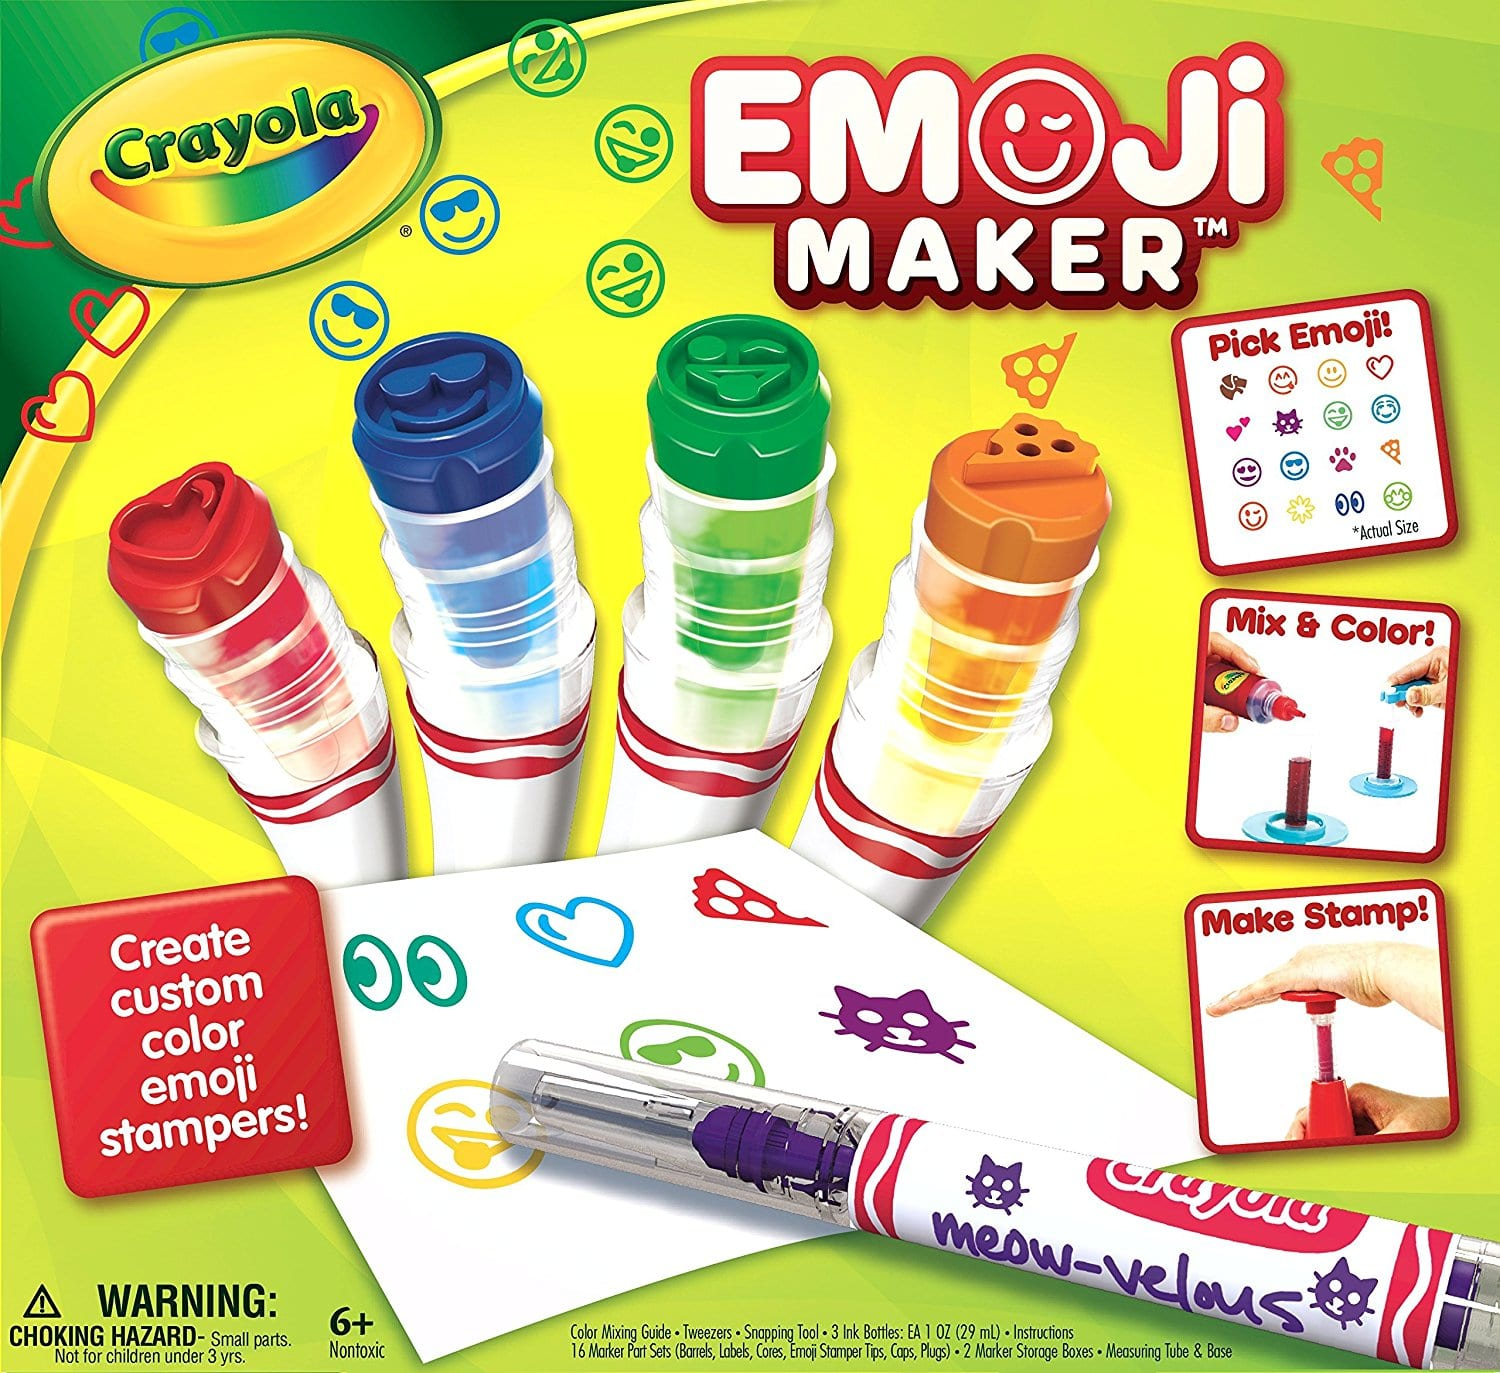 Crayola Emoji Marker Maker $8.67 ~Amazon